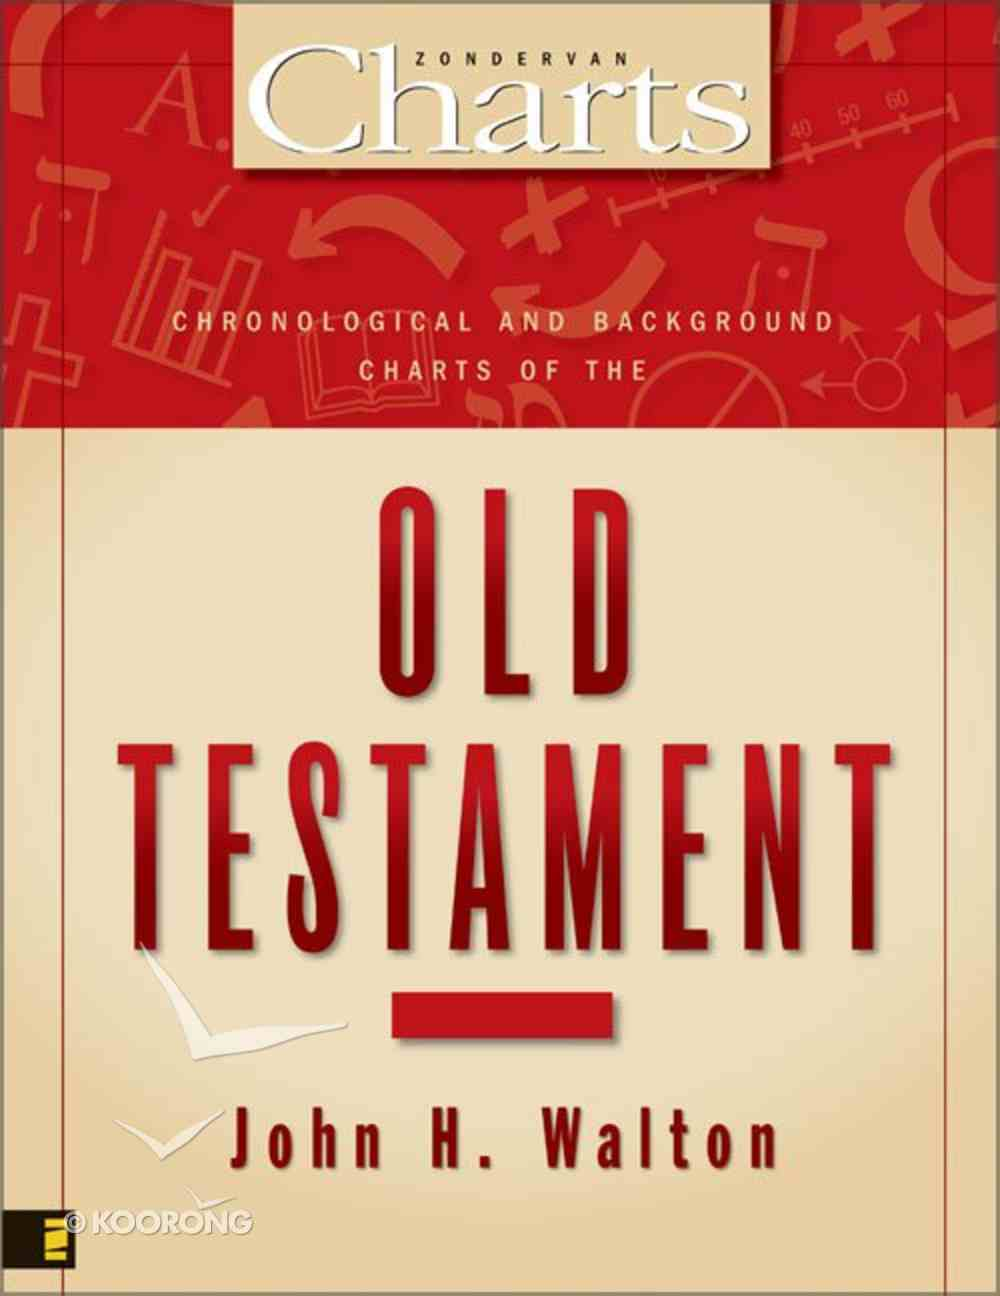 Chronological and Background Charts of the Old Testament (Zondervan Charts Series) Paperback